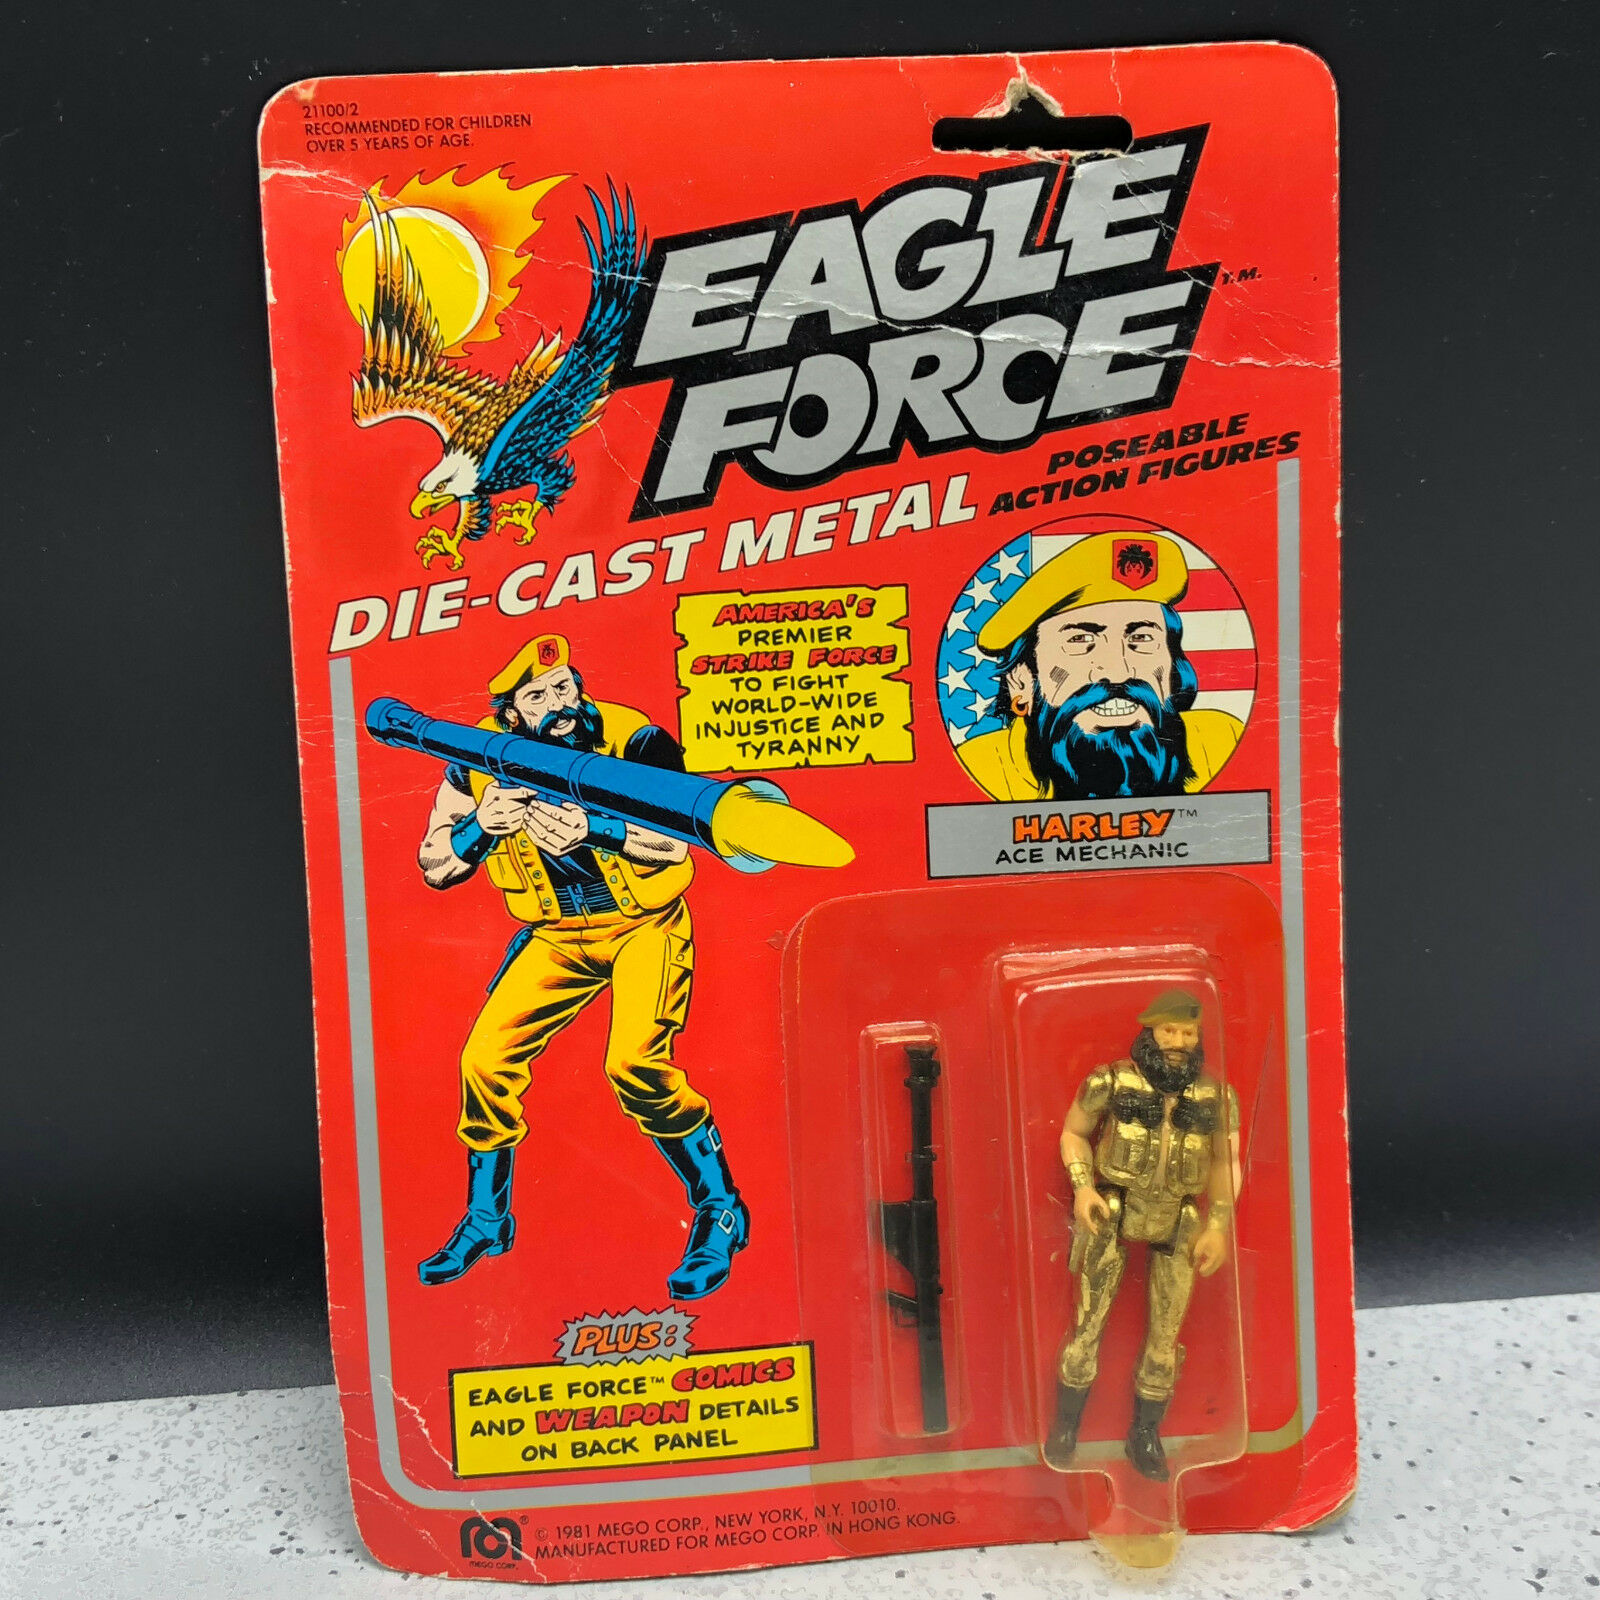 1981 MEGO EAGLE FORCE ACTION FIGURE MOC DIE CAST SOLDIER HARLEY ACE MECHANIC RPG